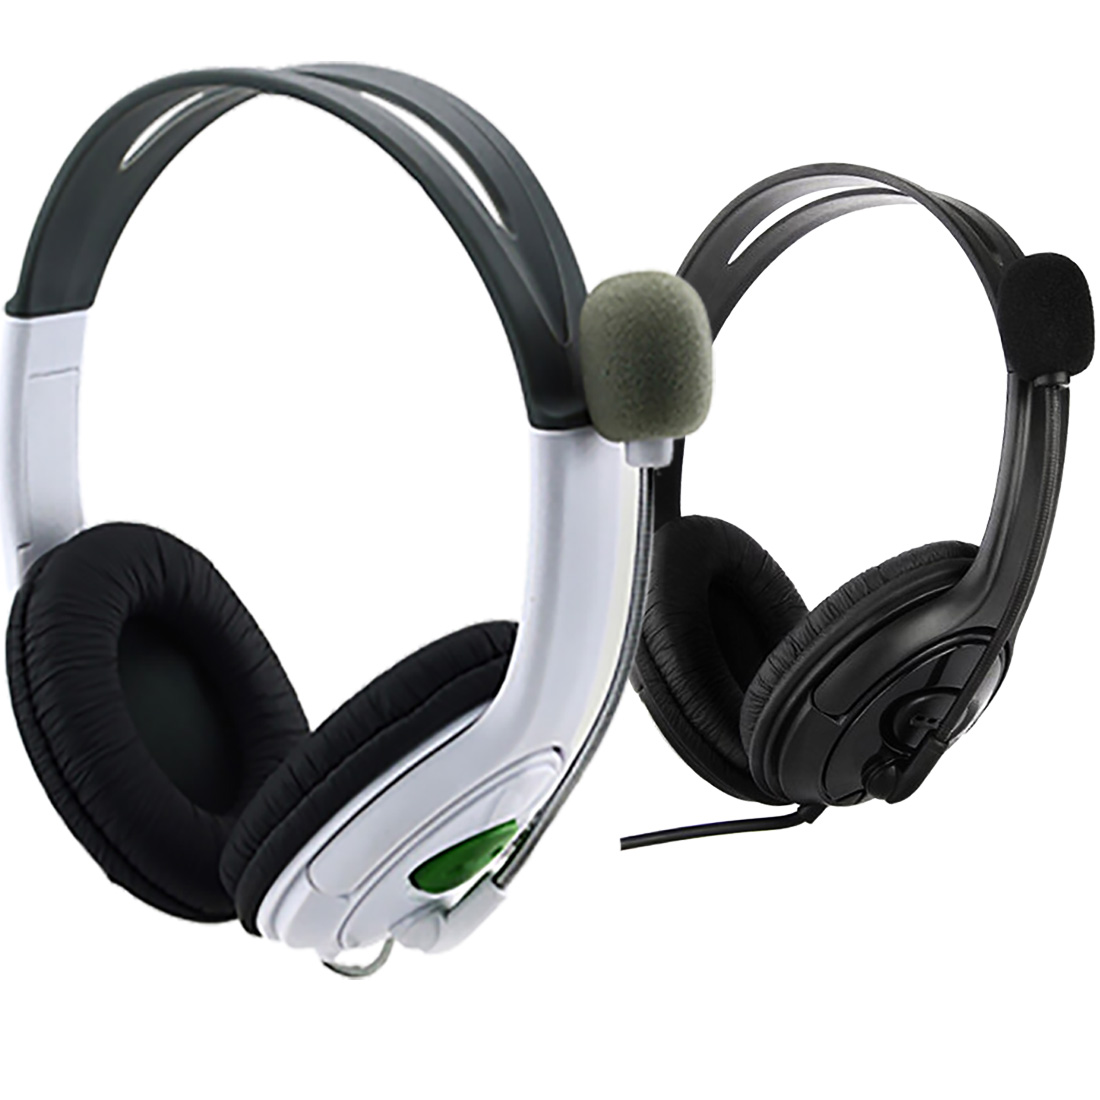 Marsnaska PC Gamer Over-ear Game Gaming Headphone Headset usb dual Earphone Headband with Mic Stereo Sound Bass for ps3 pc